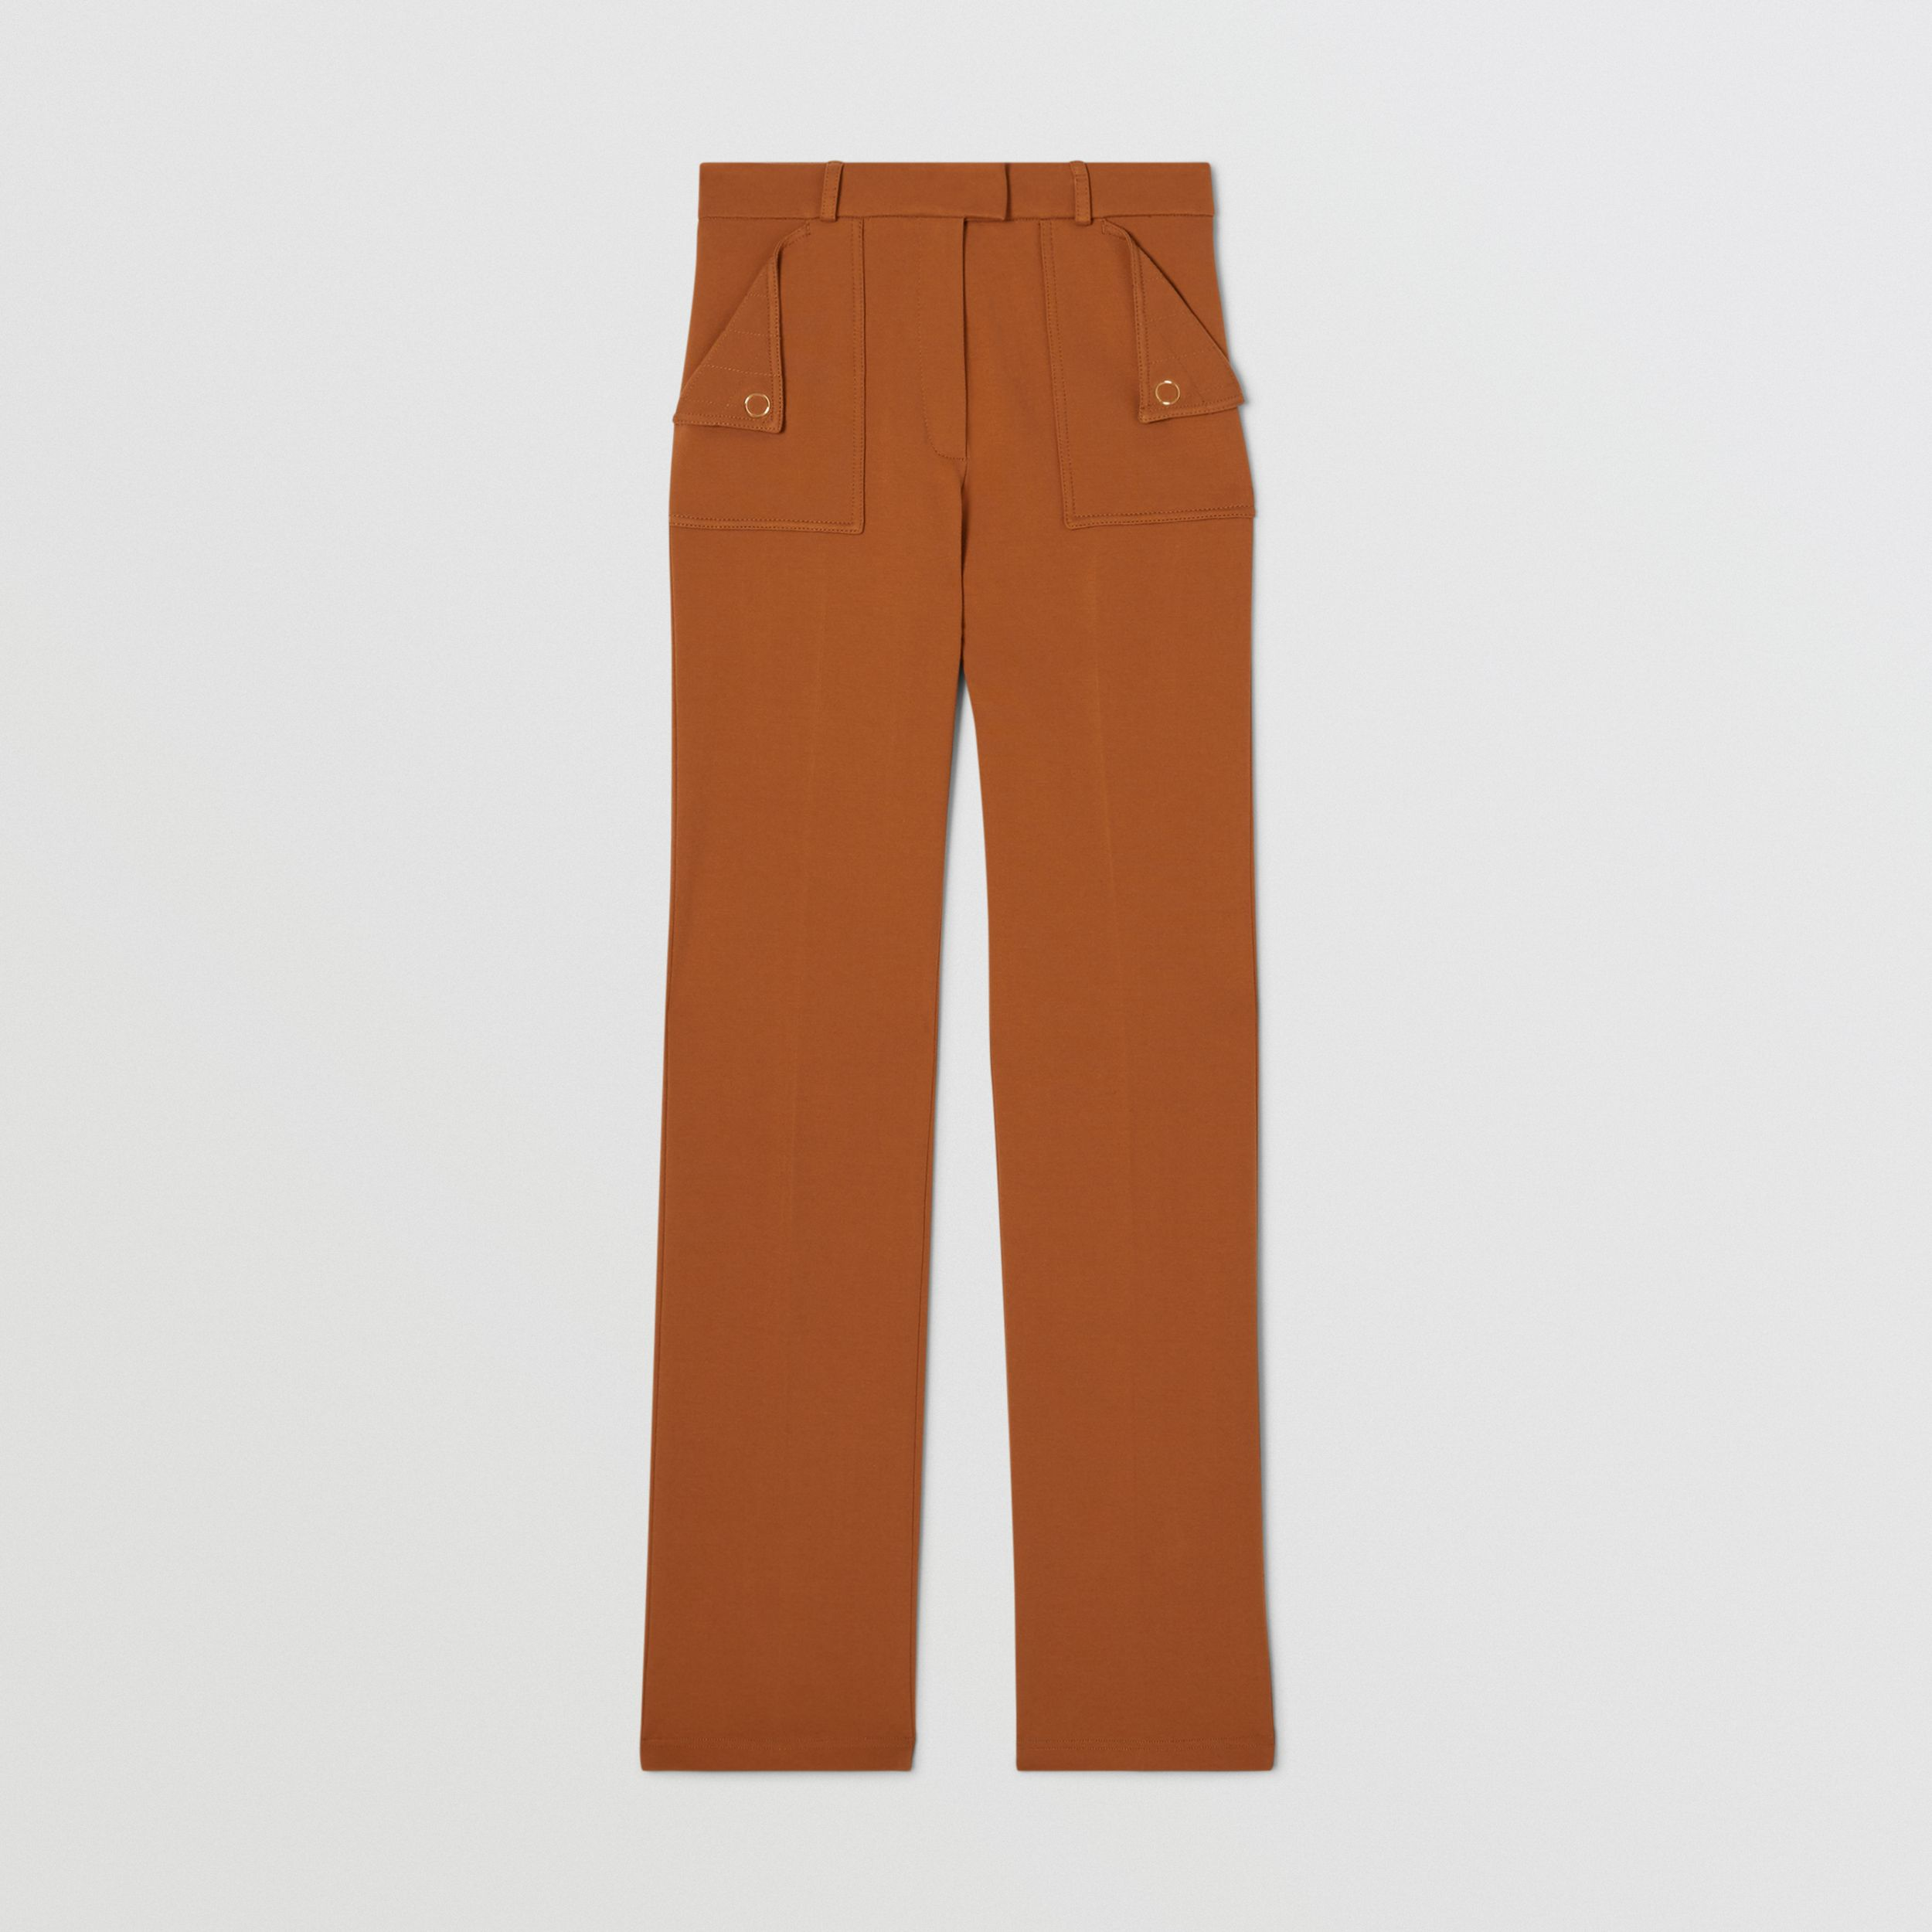 Pocket Detail Jersey Tailored Trousers in Biscuit - Women | Burberry Singapore - 4